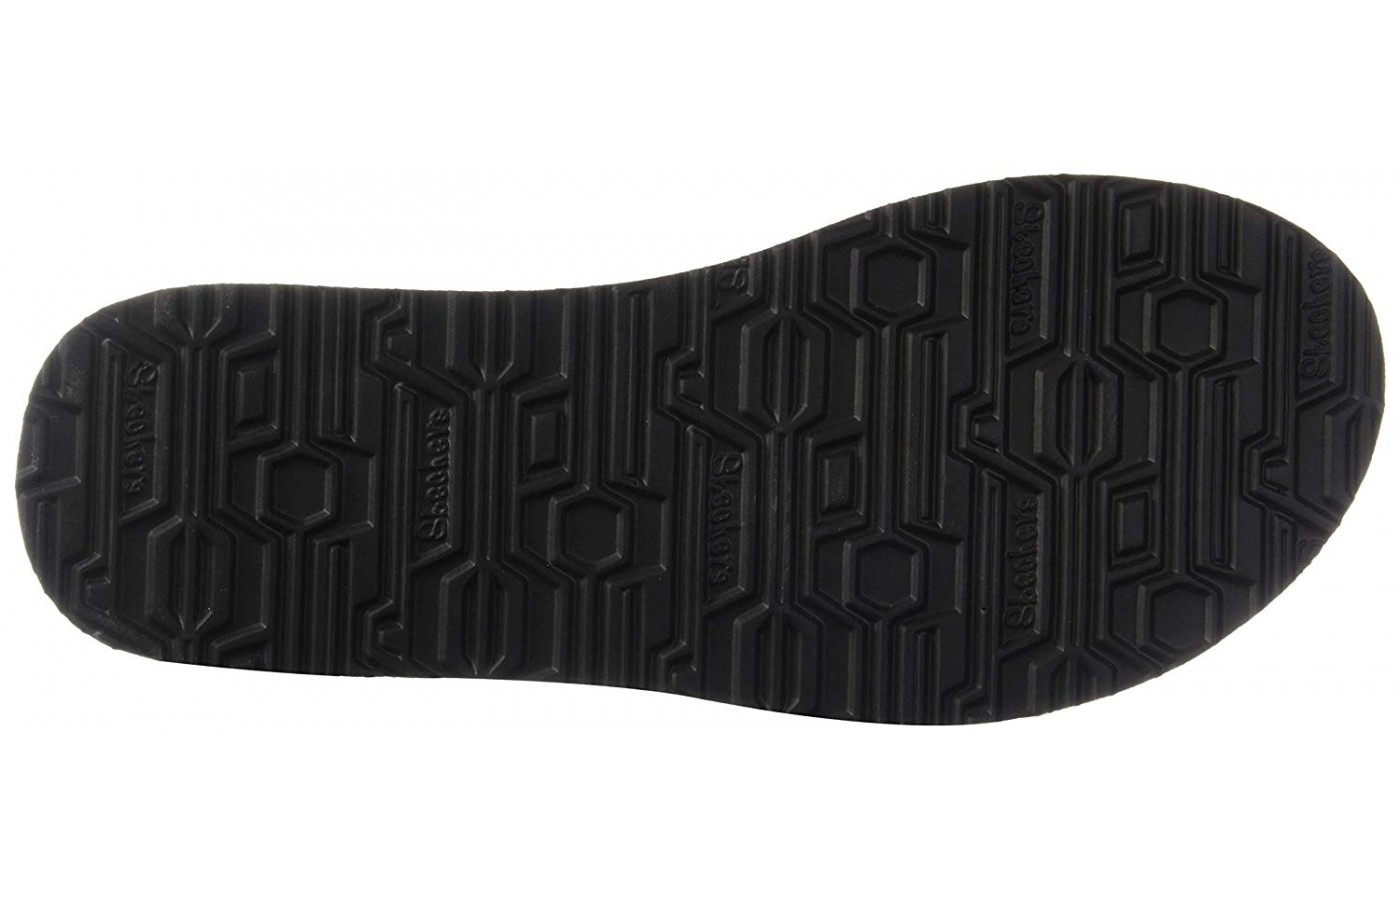 Skechers Meditation - Rock Crown Sole